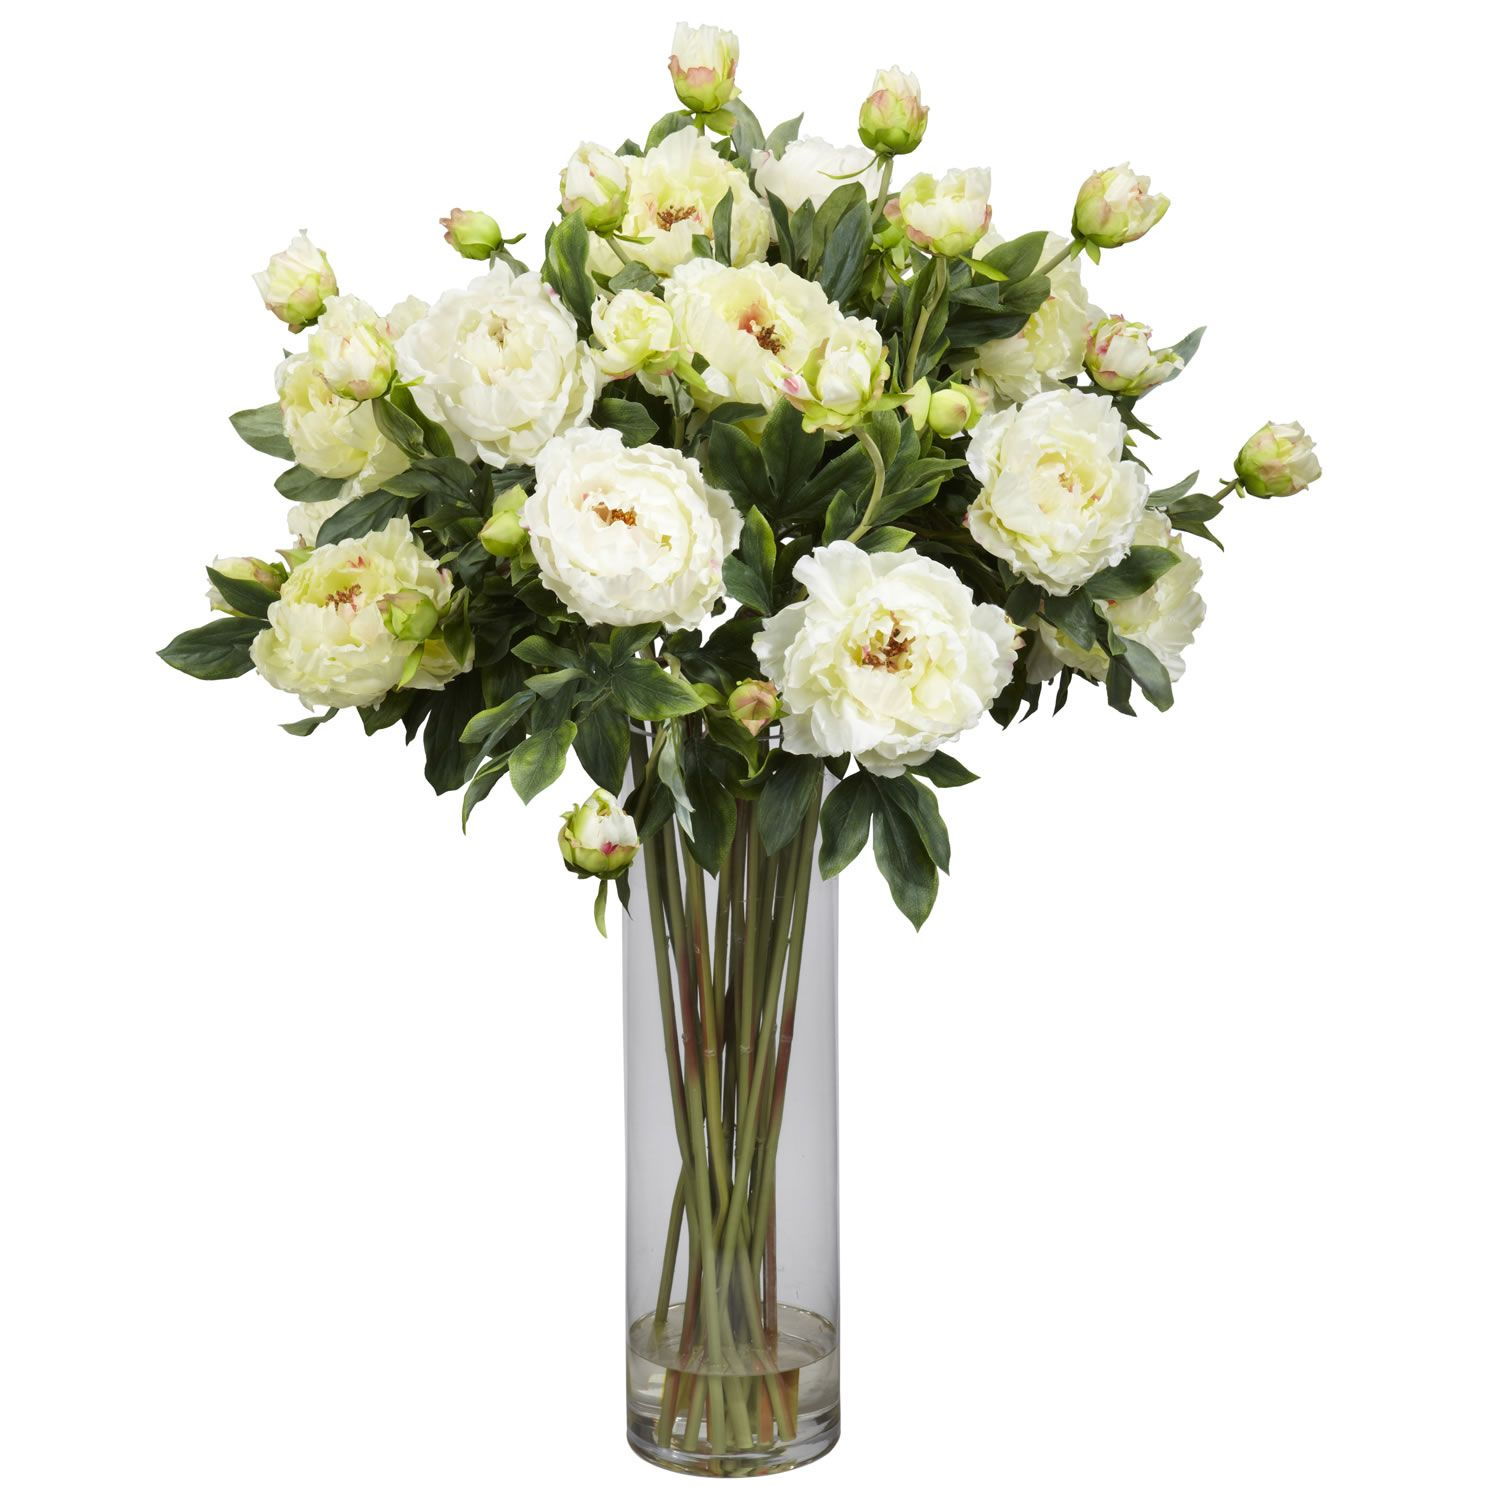 Flower arrangements silk arrangements giant peony w product faux floral arrangement construction material glass and silk color white and green features comes with vase and faux water beautiful reviewsmspy